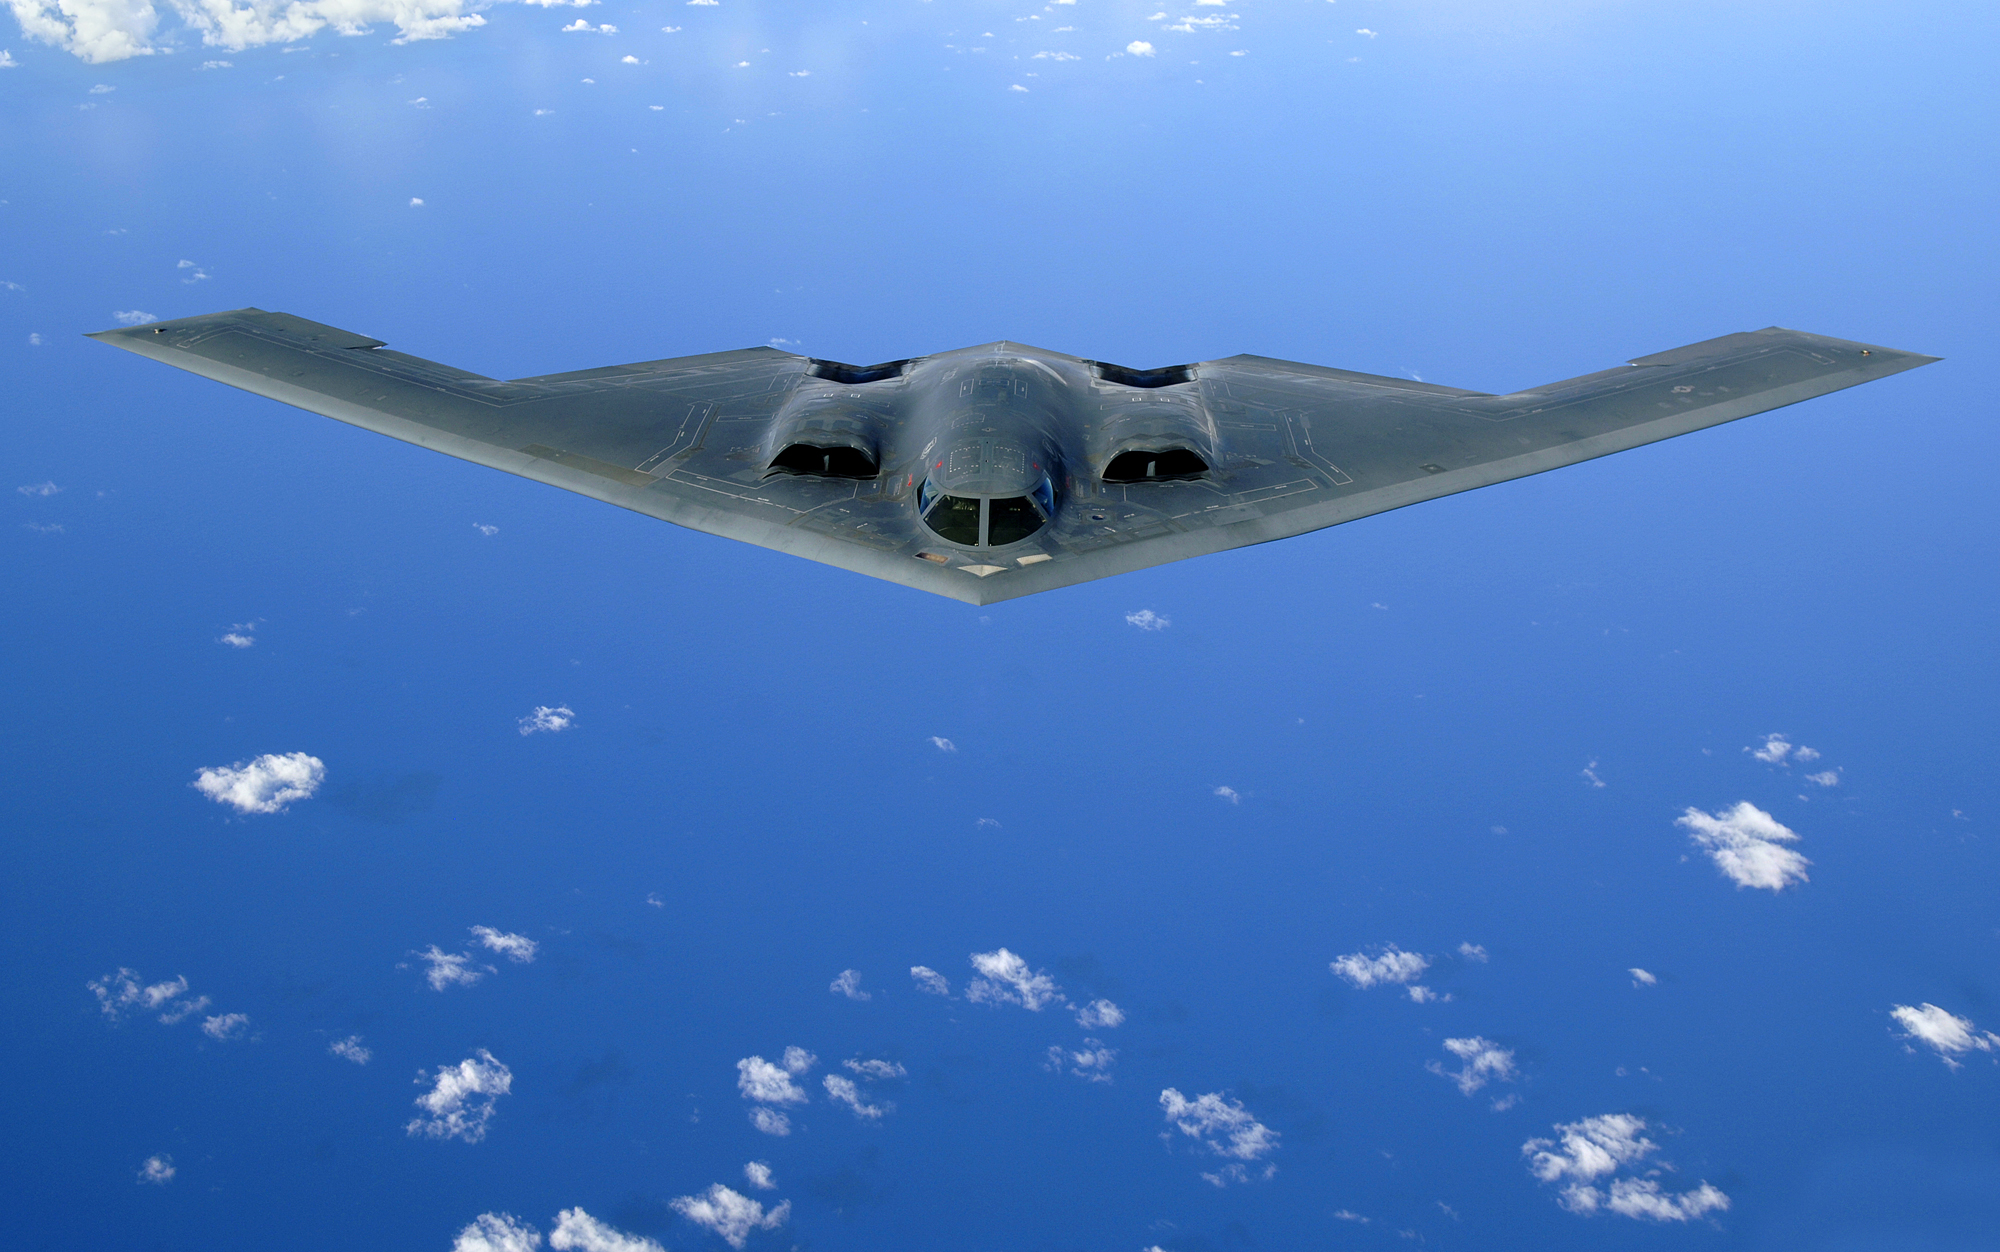 http://upload.wikimedia.org/wikipedia/commons/4/47/B-2_Spirit_original.jpg